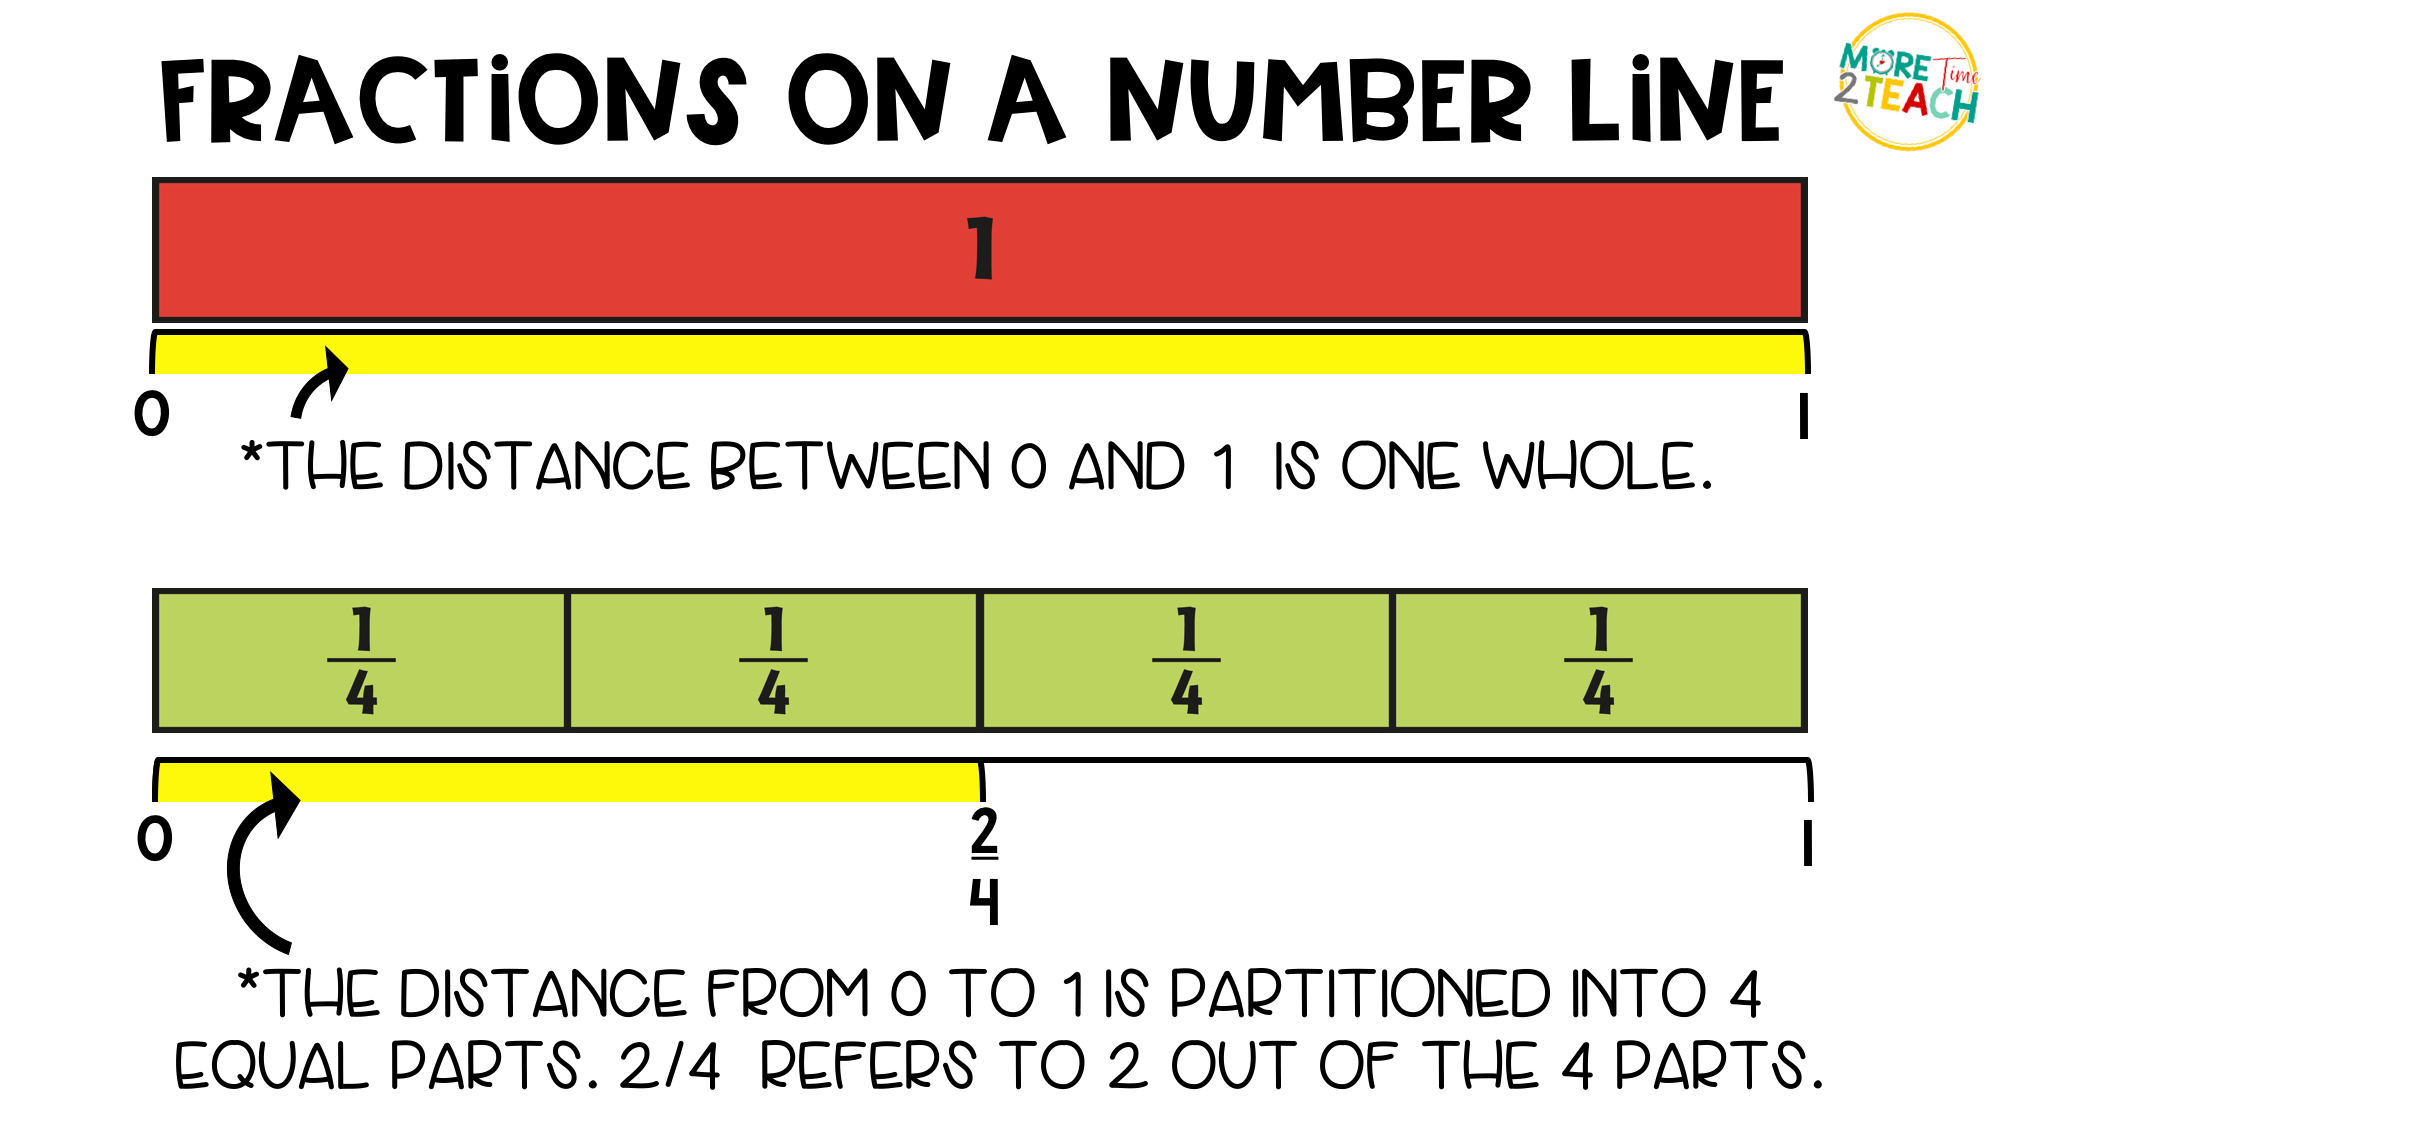 Fraction drawing written. Fractions on a number